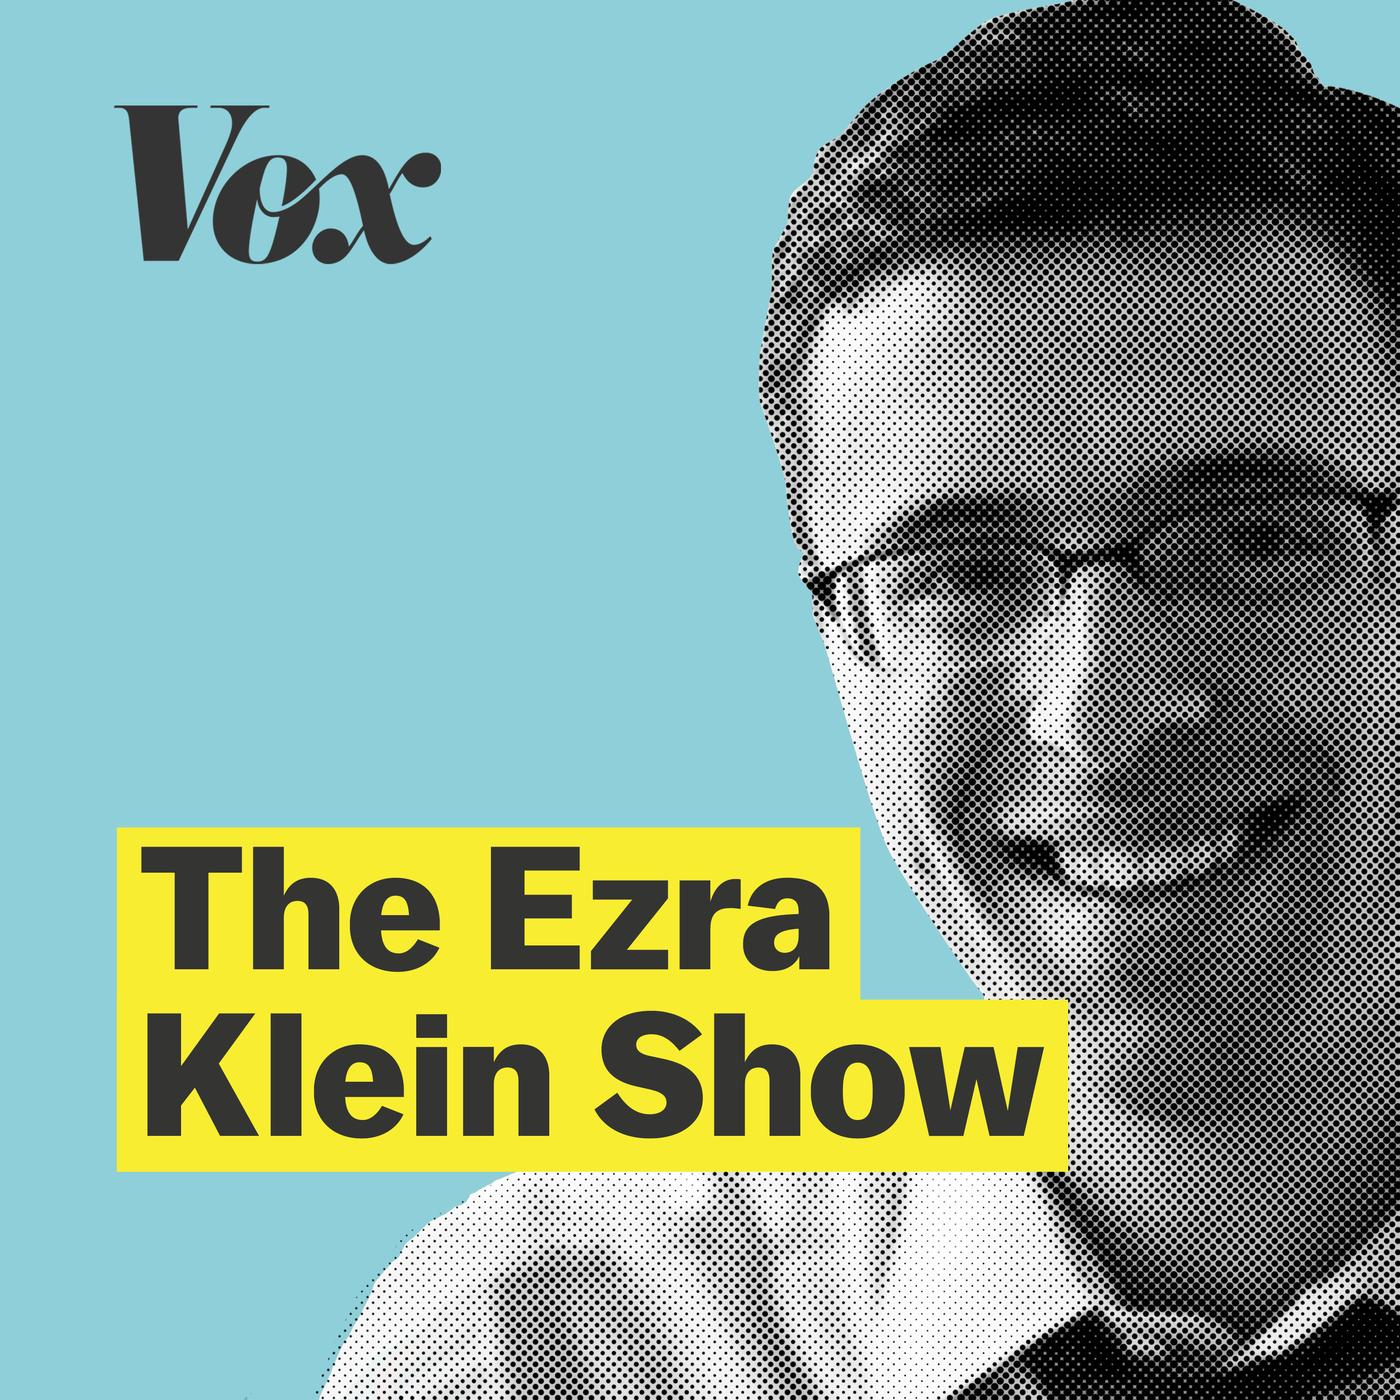 Work as identity, burnout as lifestyle - The Ezra Klein Show